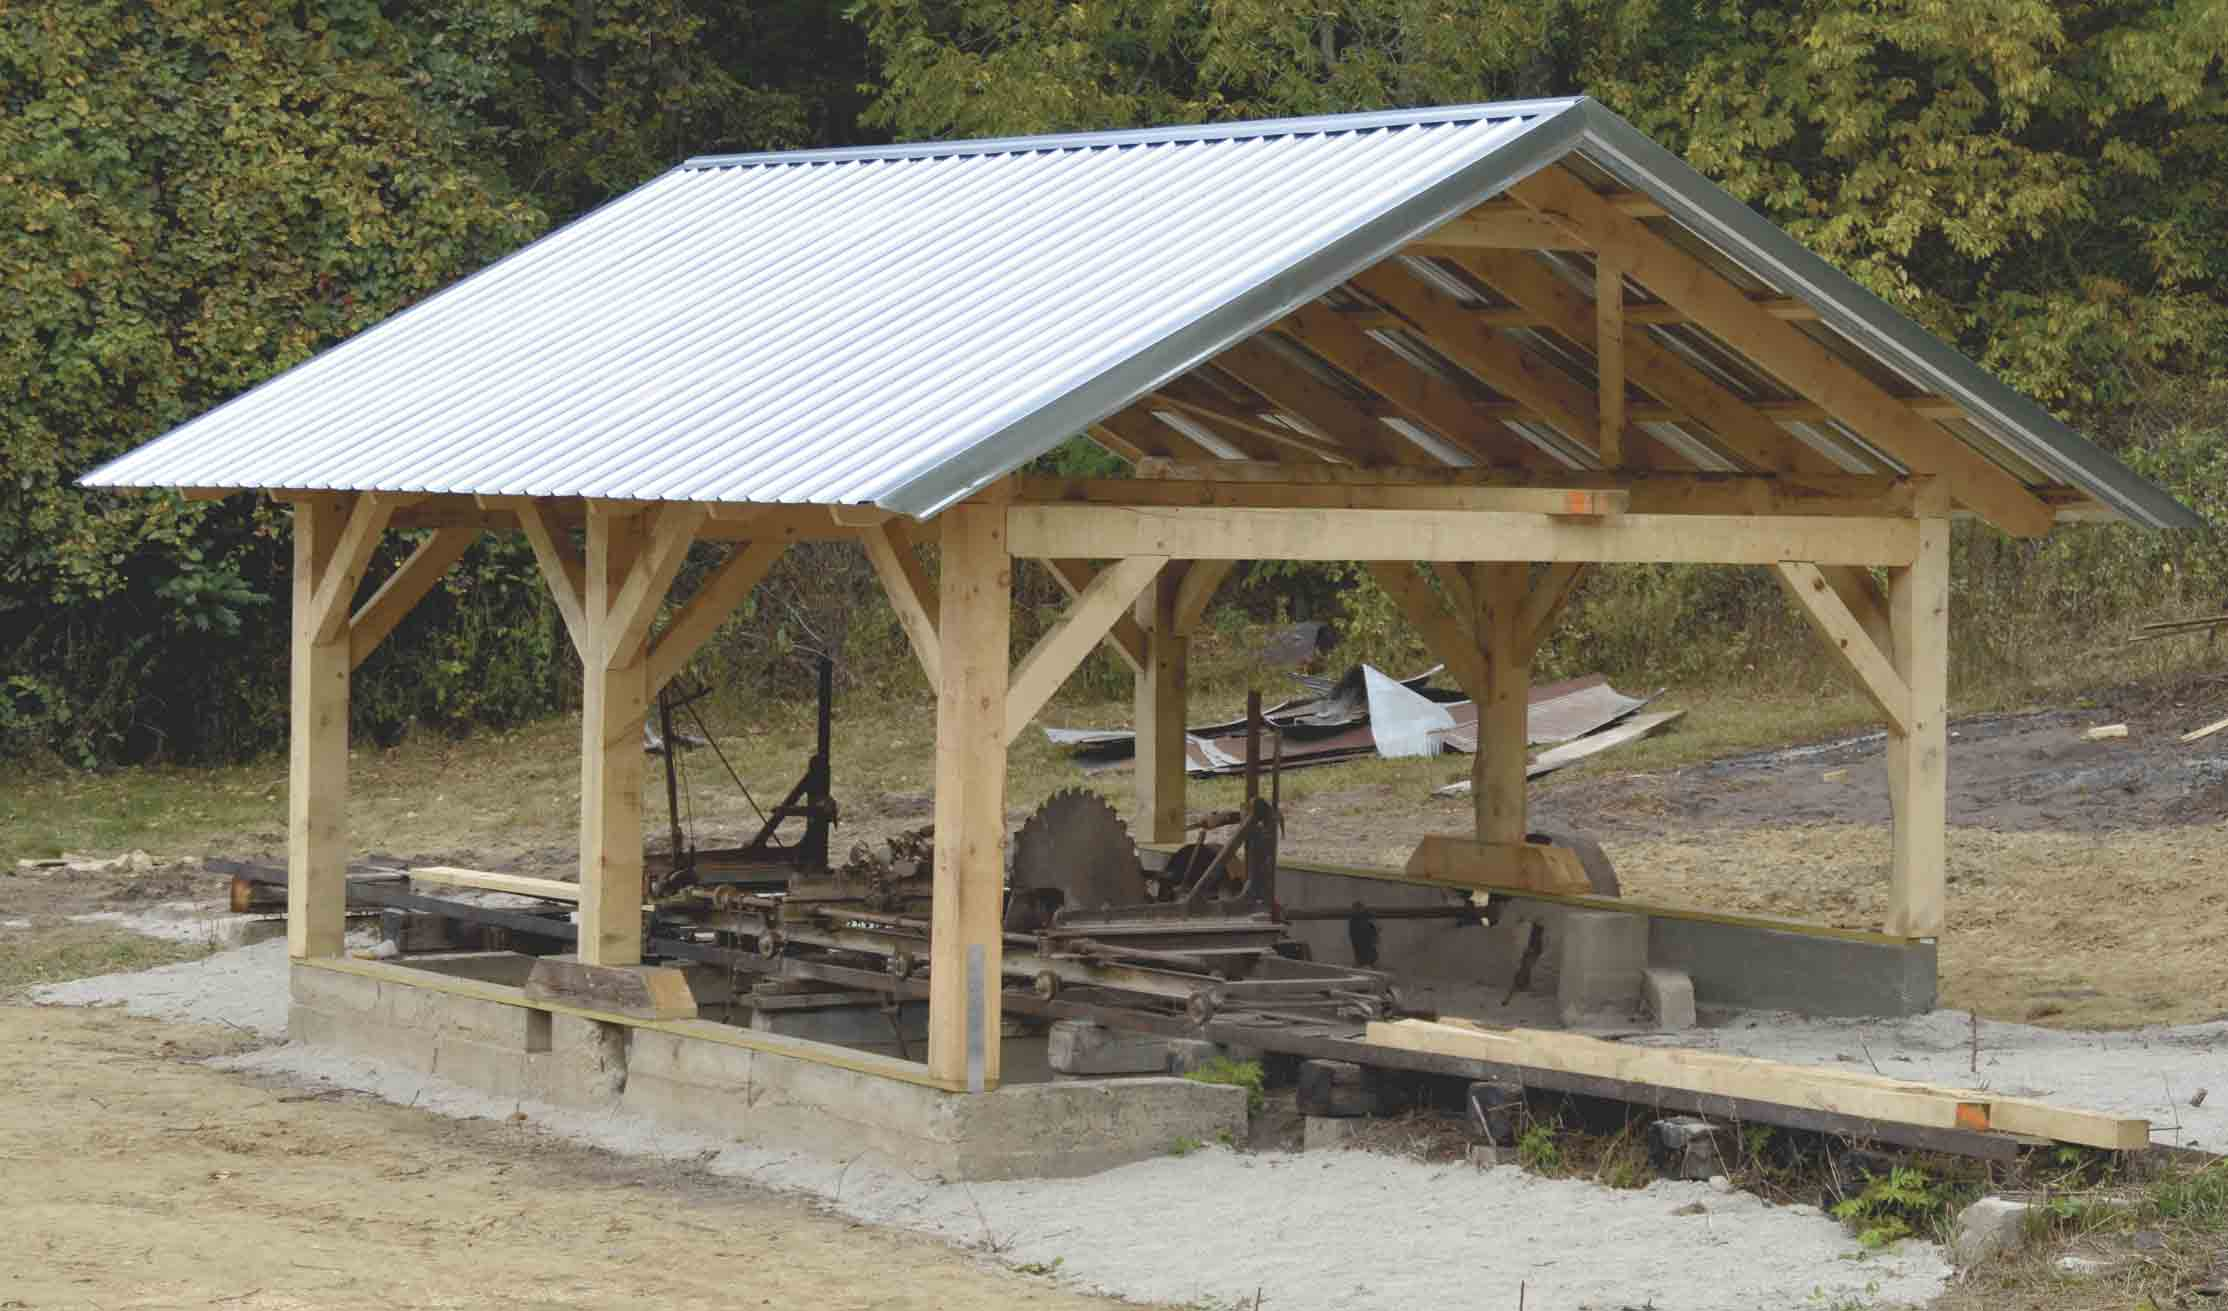 An old sawmill located at Gilbertson Park in Elgin has a new roof over its head after Fayette County Conservation worked with Dale Kittleson, owner of Wild Rose Timberworks in Decorah, to build a timber-frame shelter for the mill. (Chris DeBack photo) 	Old-time technique used to...